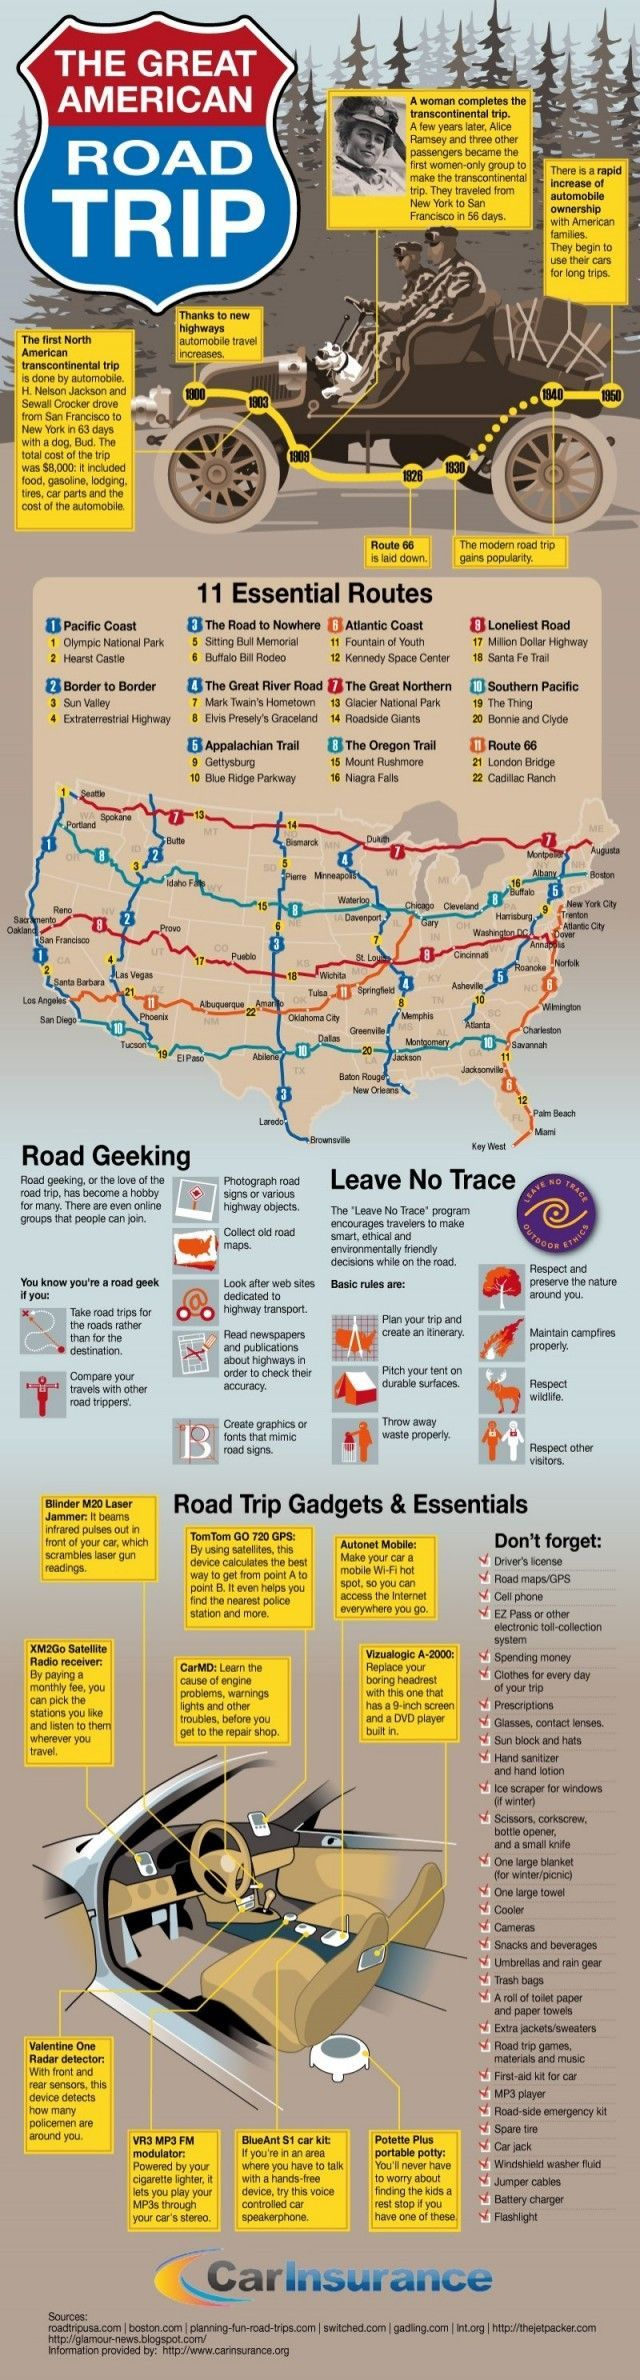 Roadtrip across America: 11 essential road trip routes + tips & facts